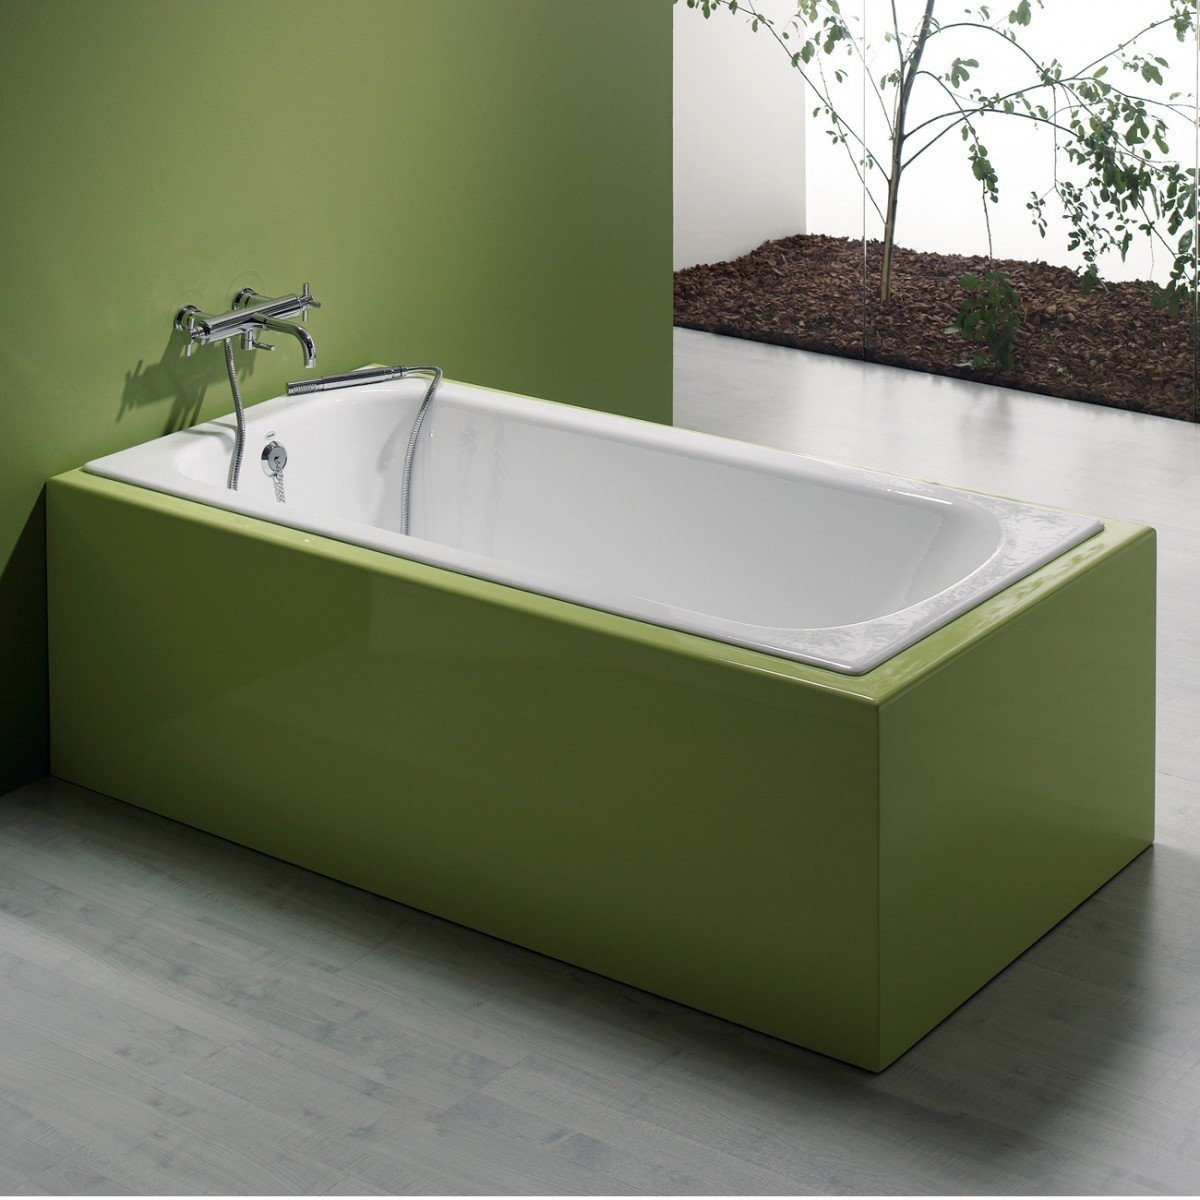 China Acrylic Hotel Project Modern Drop In Bathtub Photos Pictures Made In China Com